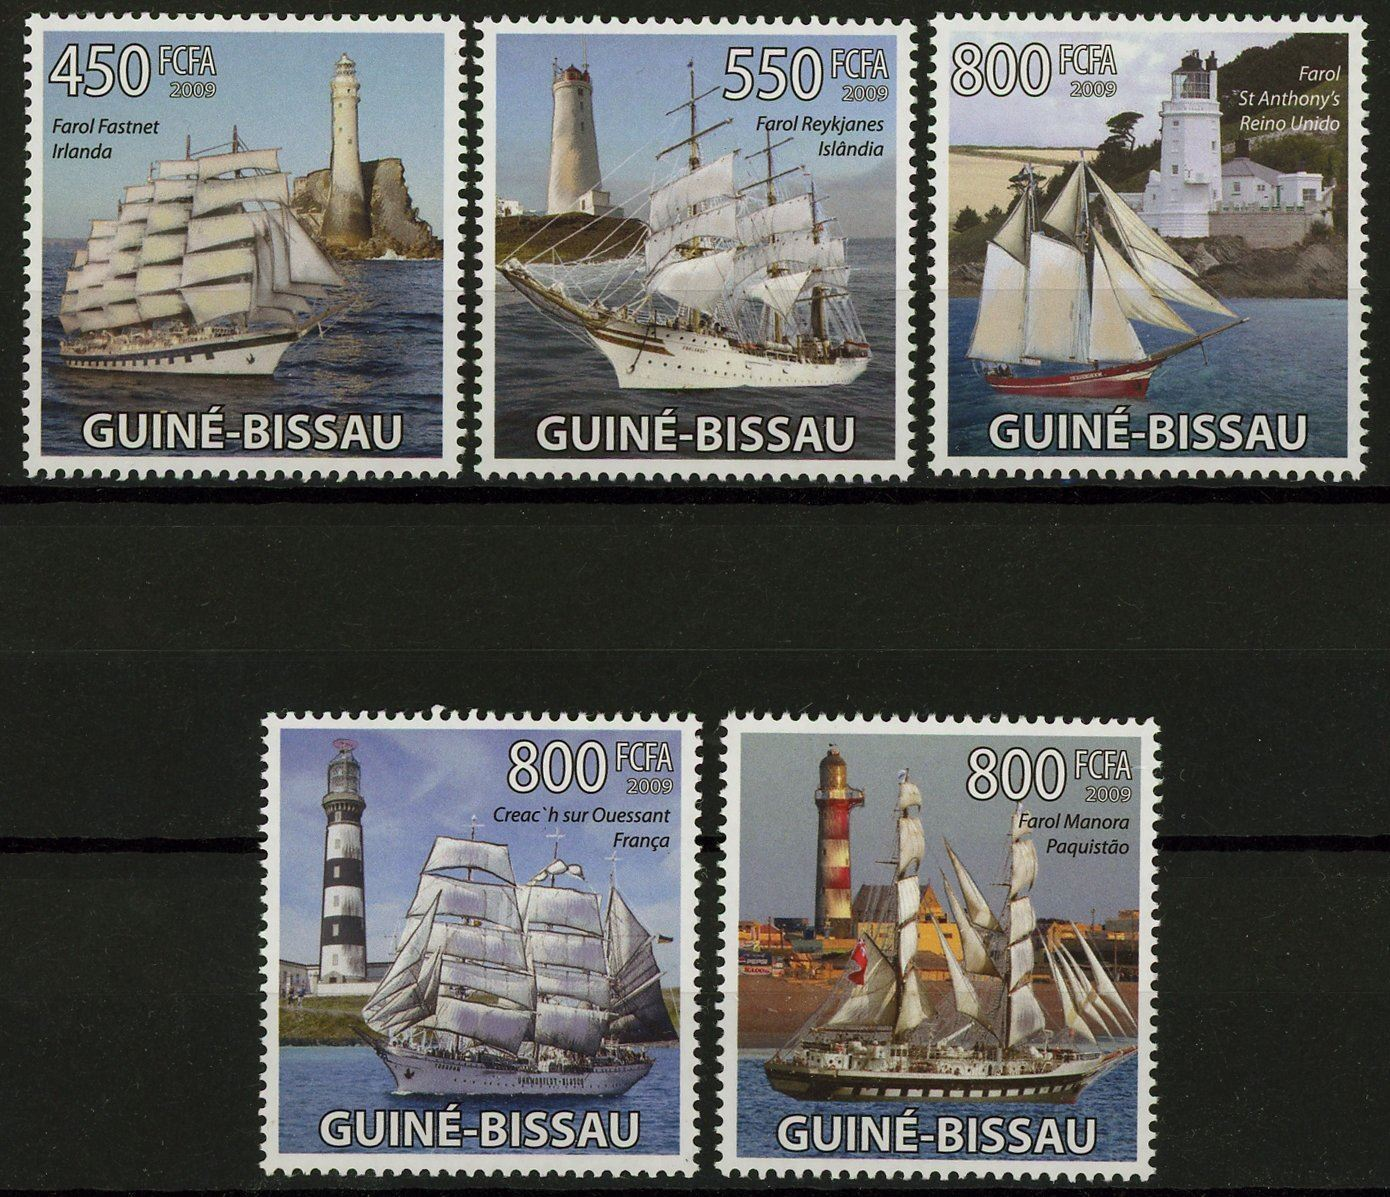 Guiné-Bissau Famous Sailboats and and 50 similar items